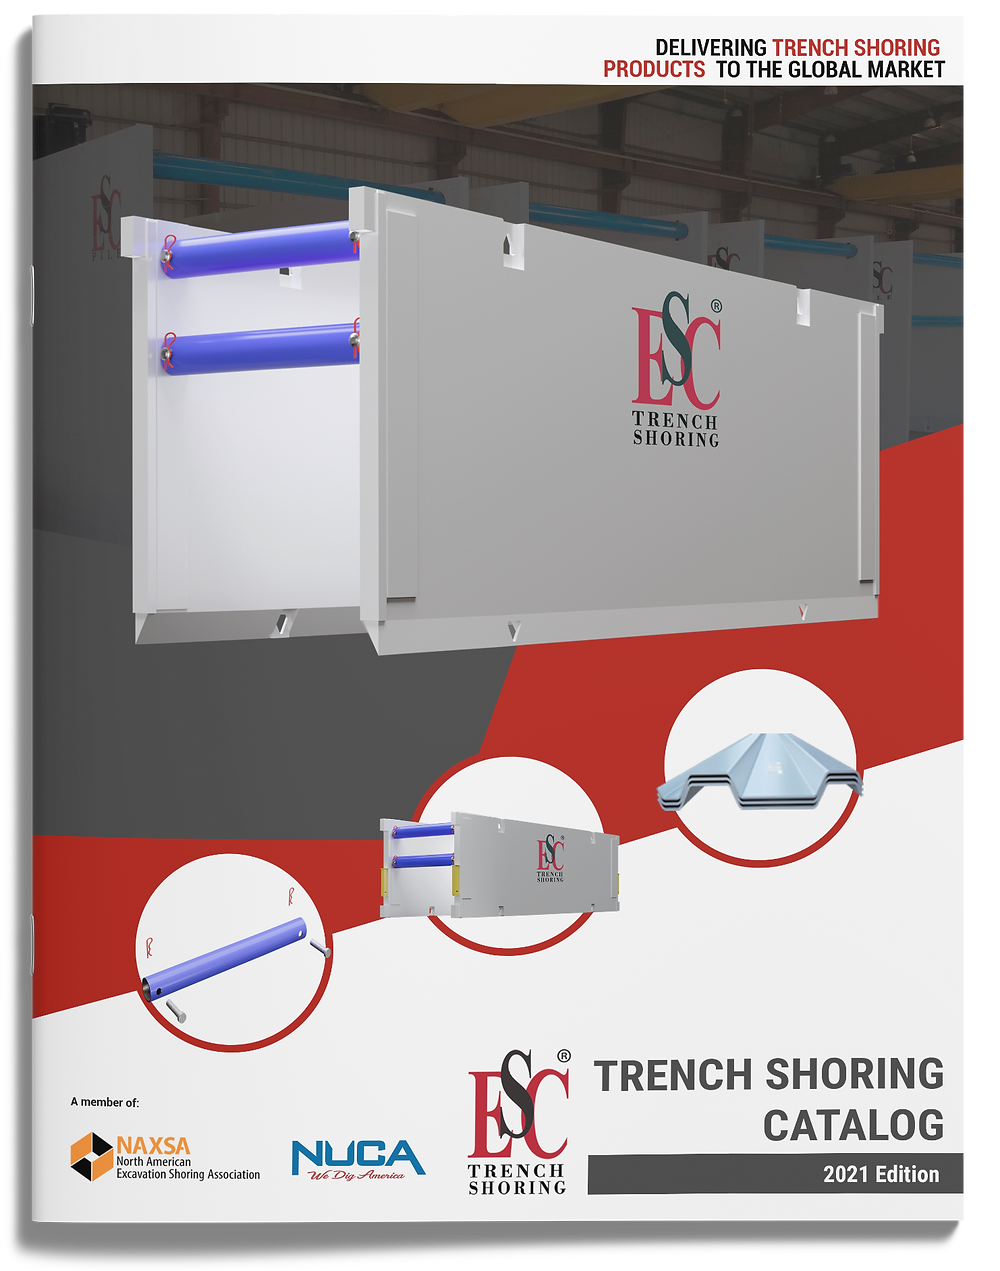 trench shoring catalogue